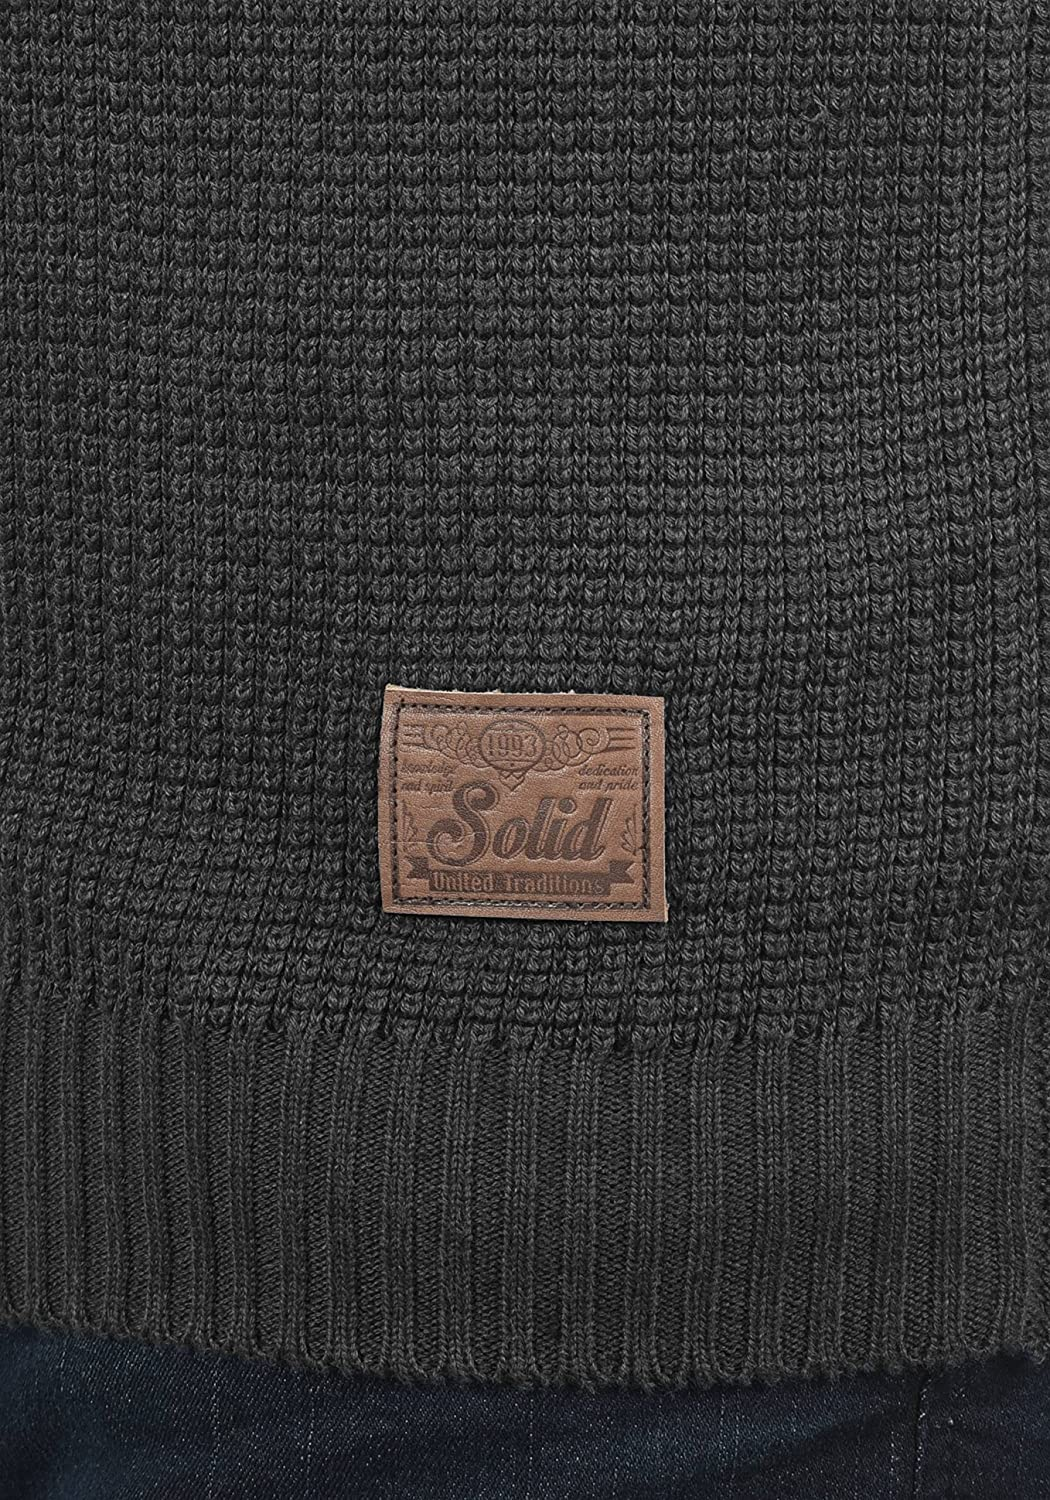 Solid Tyrell Mens Cardigan Knit Jacket with V-Neck